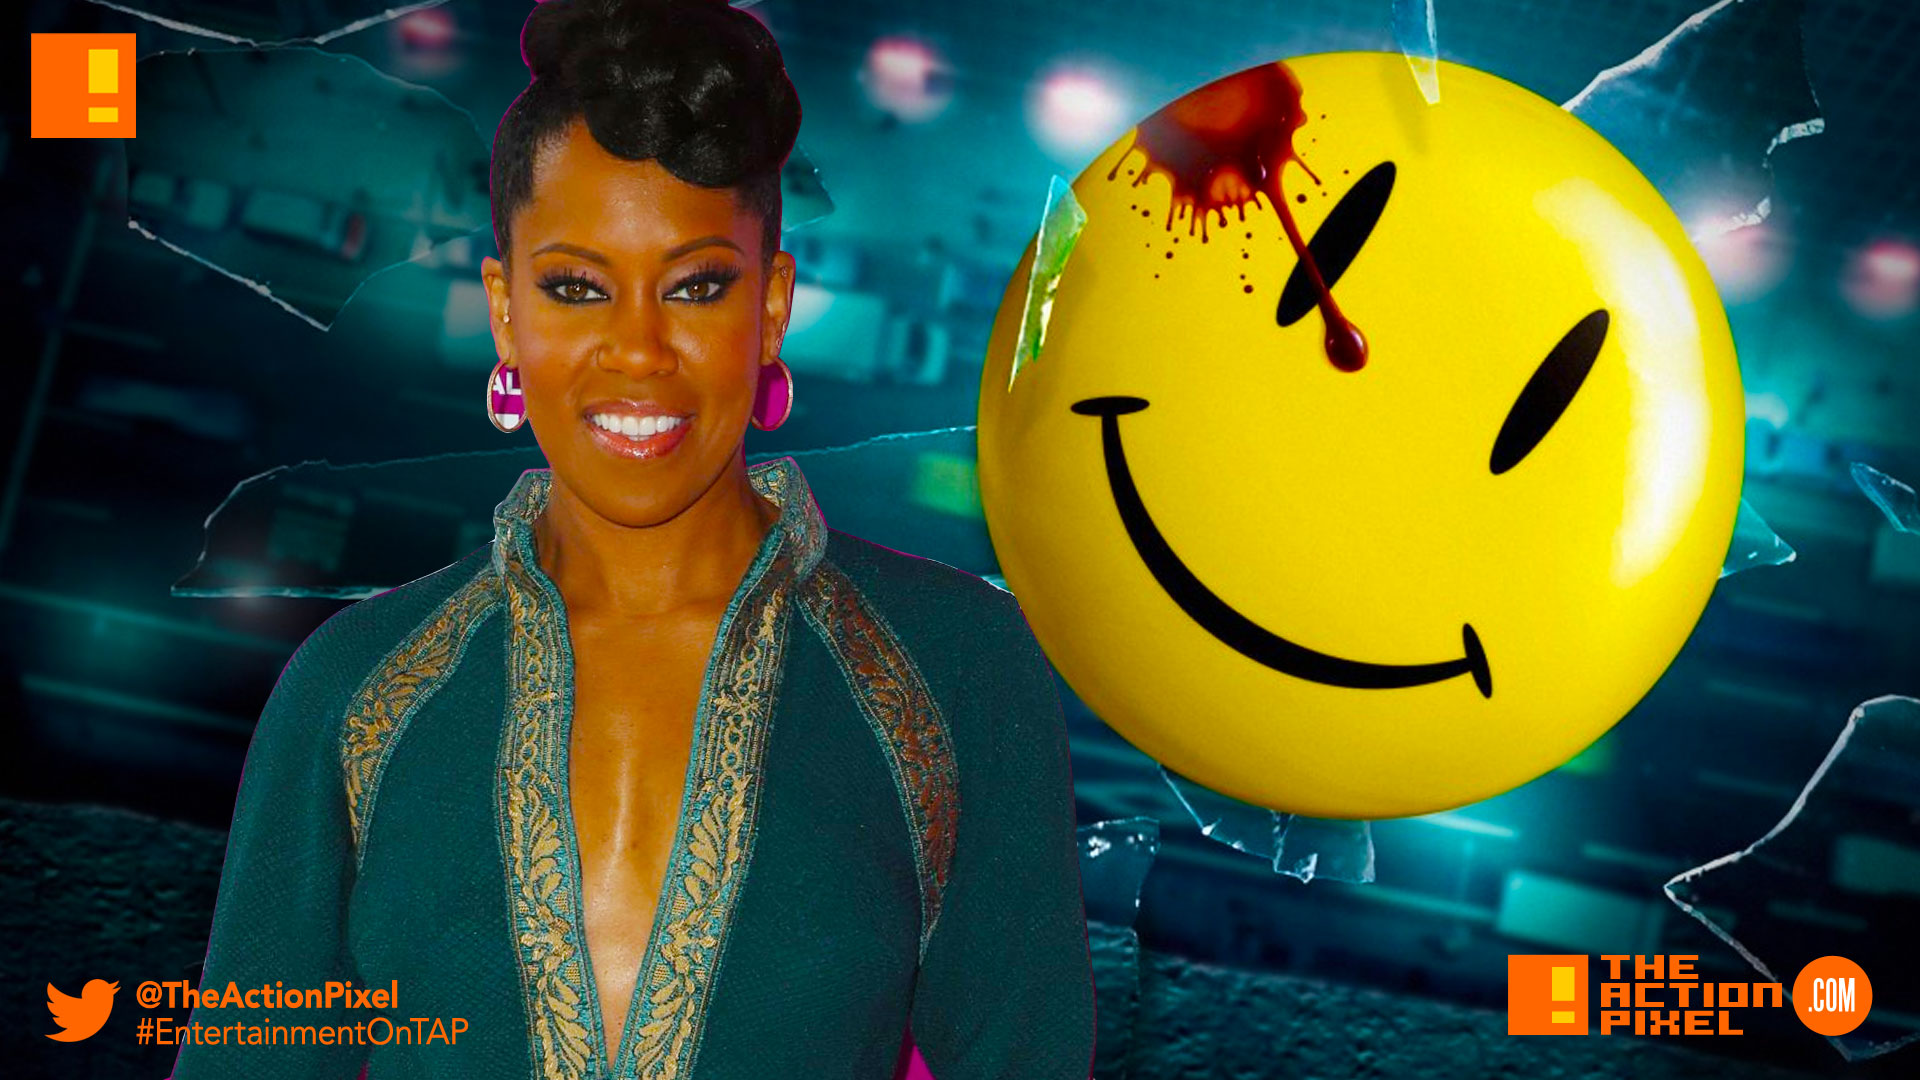 regina king, watchmen, hbo's watchmen, the action pixel,entertainment on tap